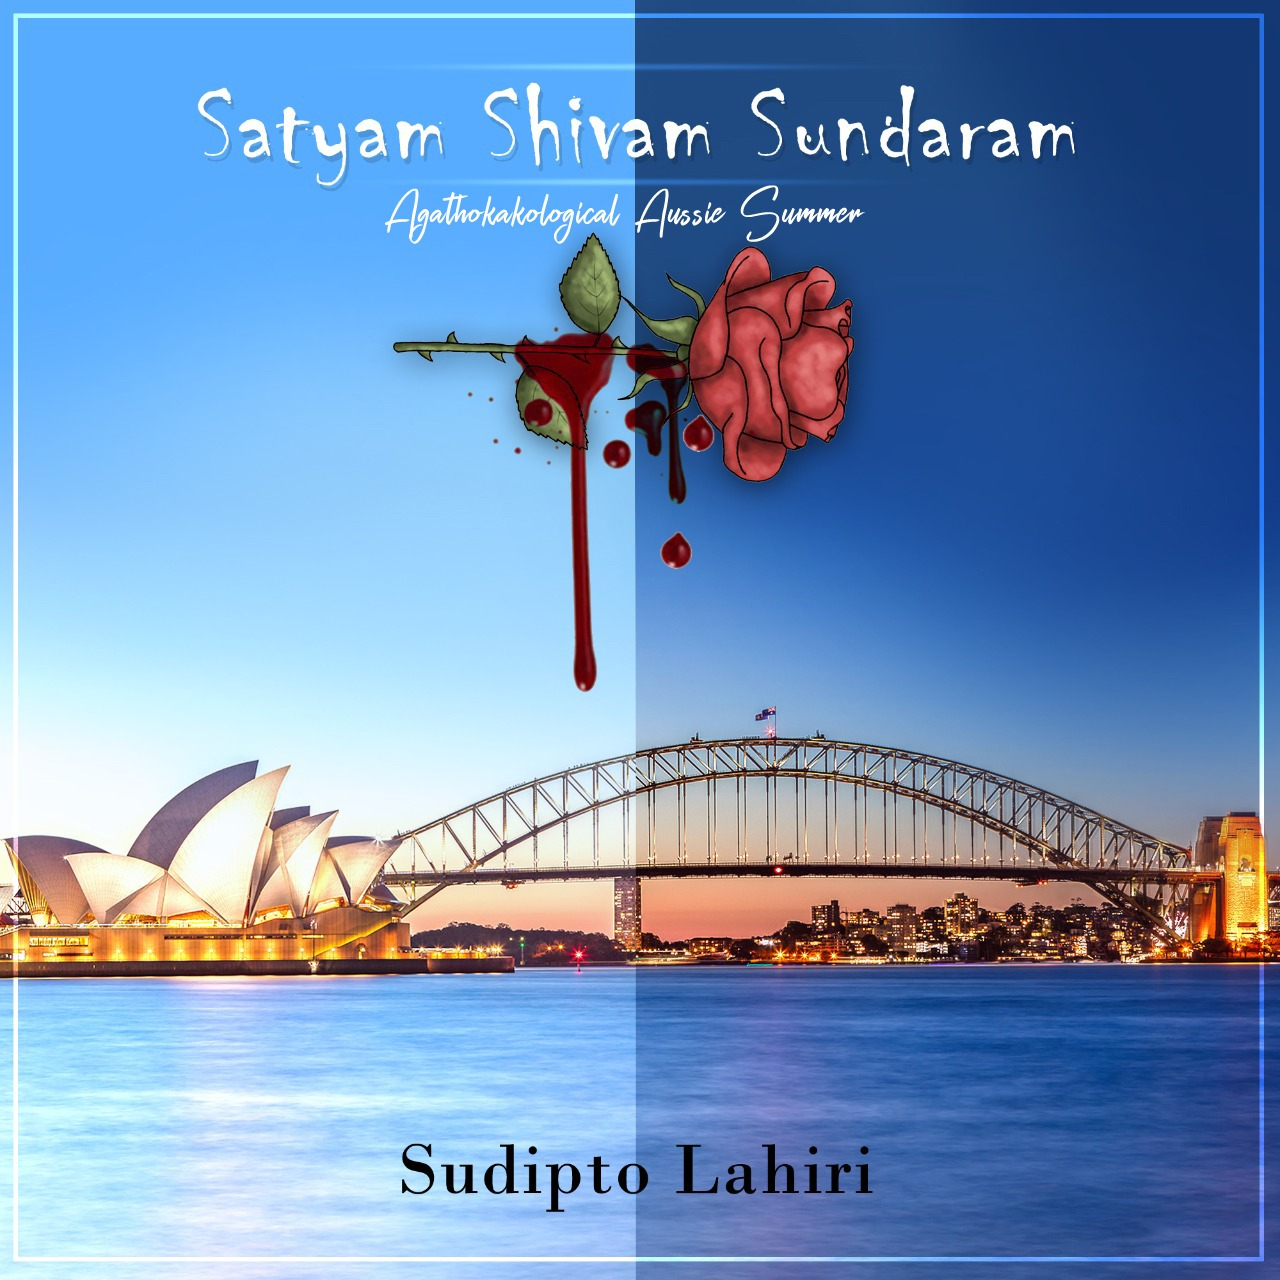 Honour for Kolkata based author Sudipto Lahiri - 'Satyam Shivam Sundaram' gets International acclaim